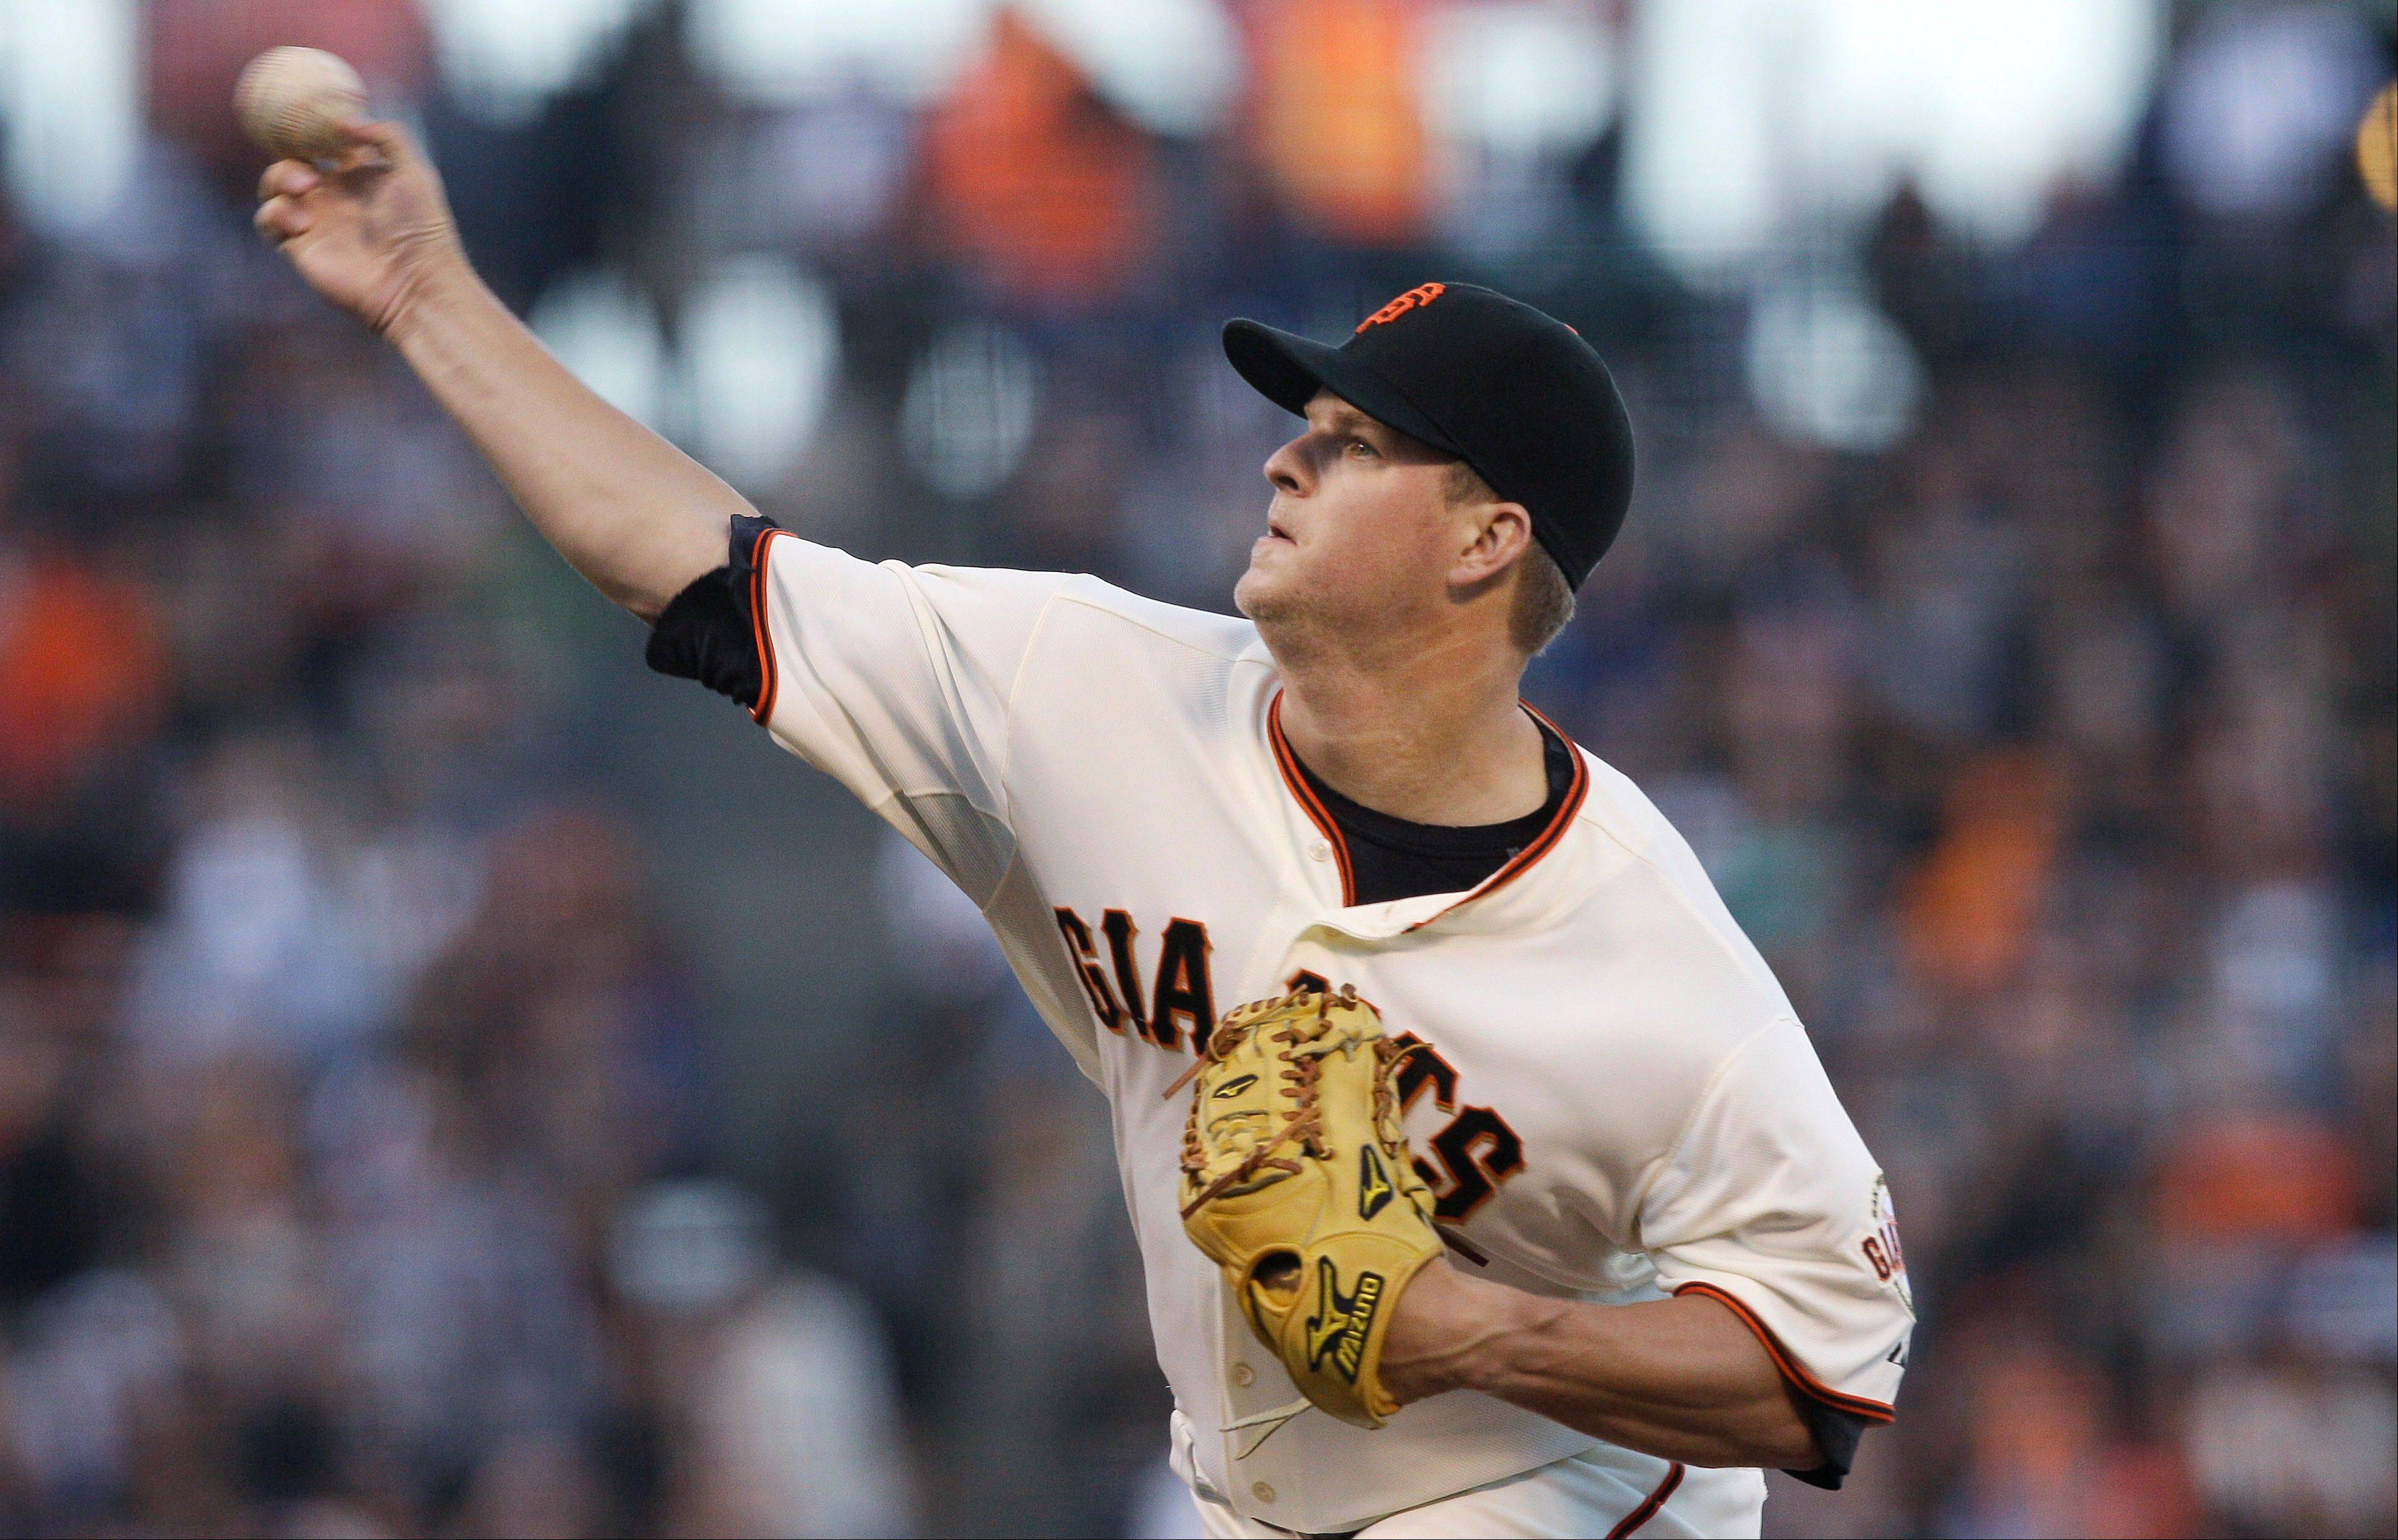 San Francisco Giants pitcher Matt Cain delivers against the Houston Astros Wednesday during the third inning.